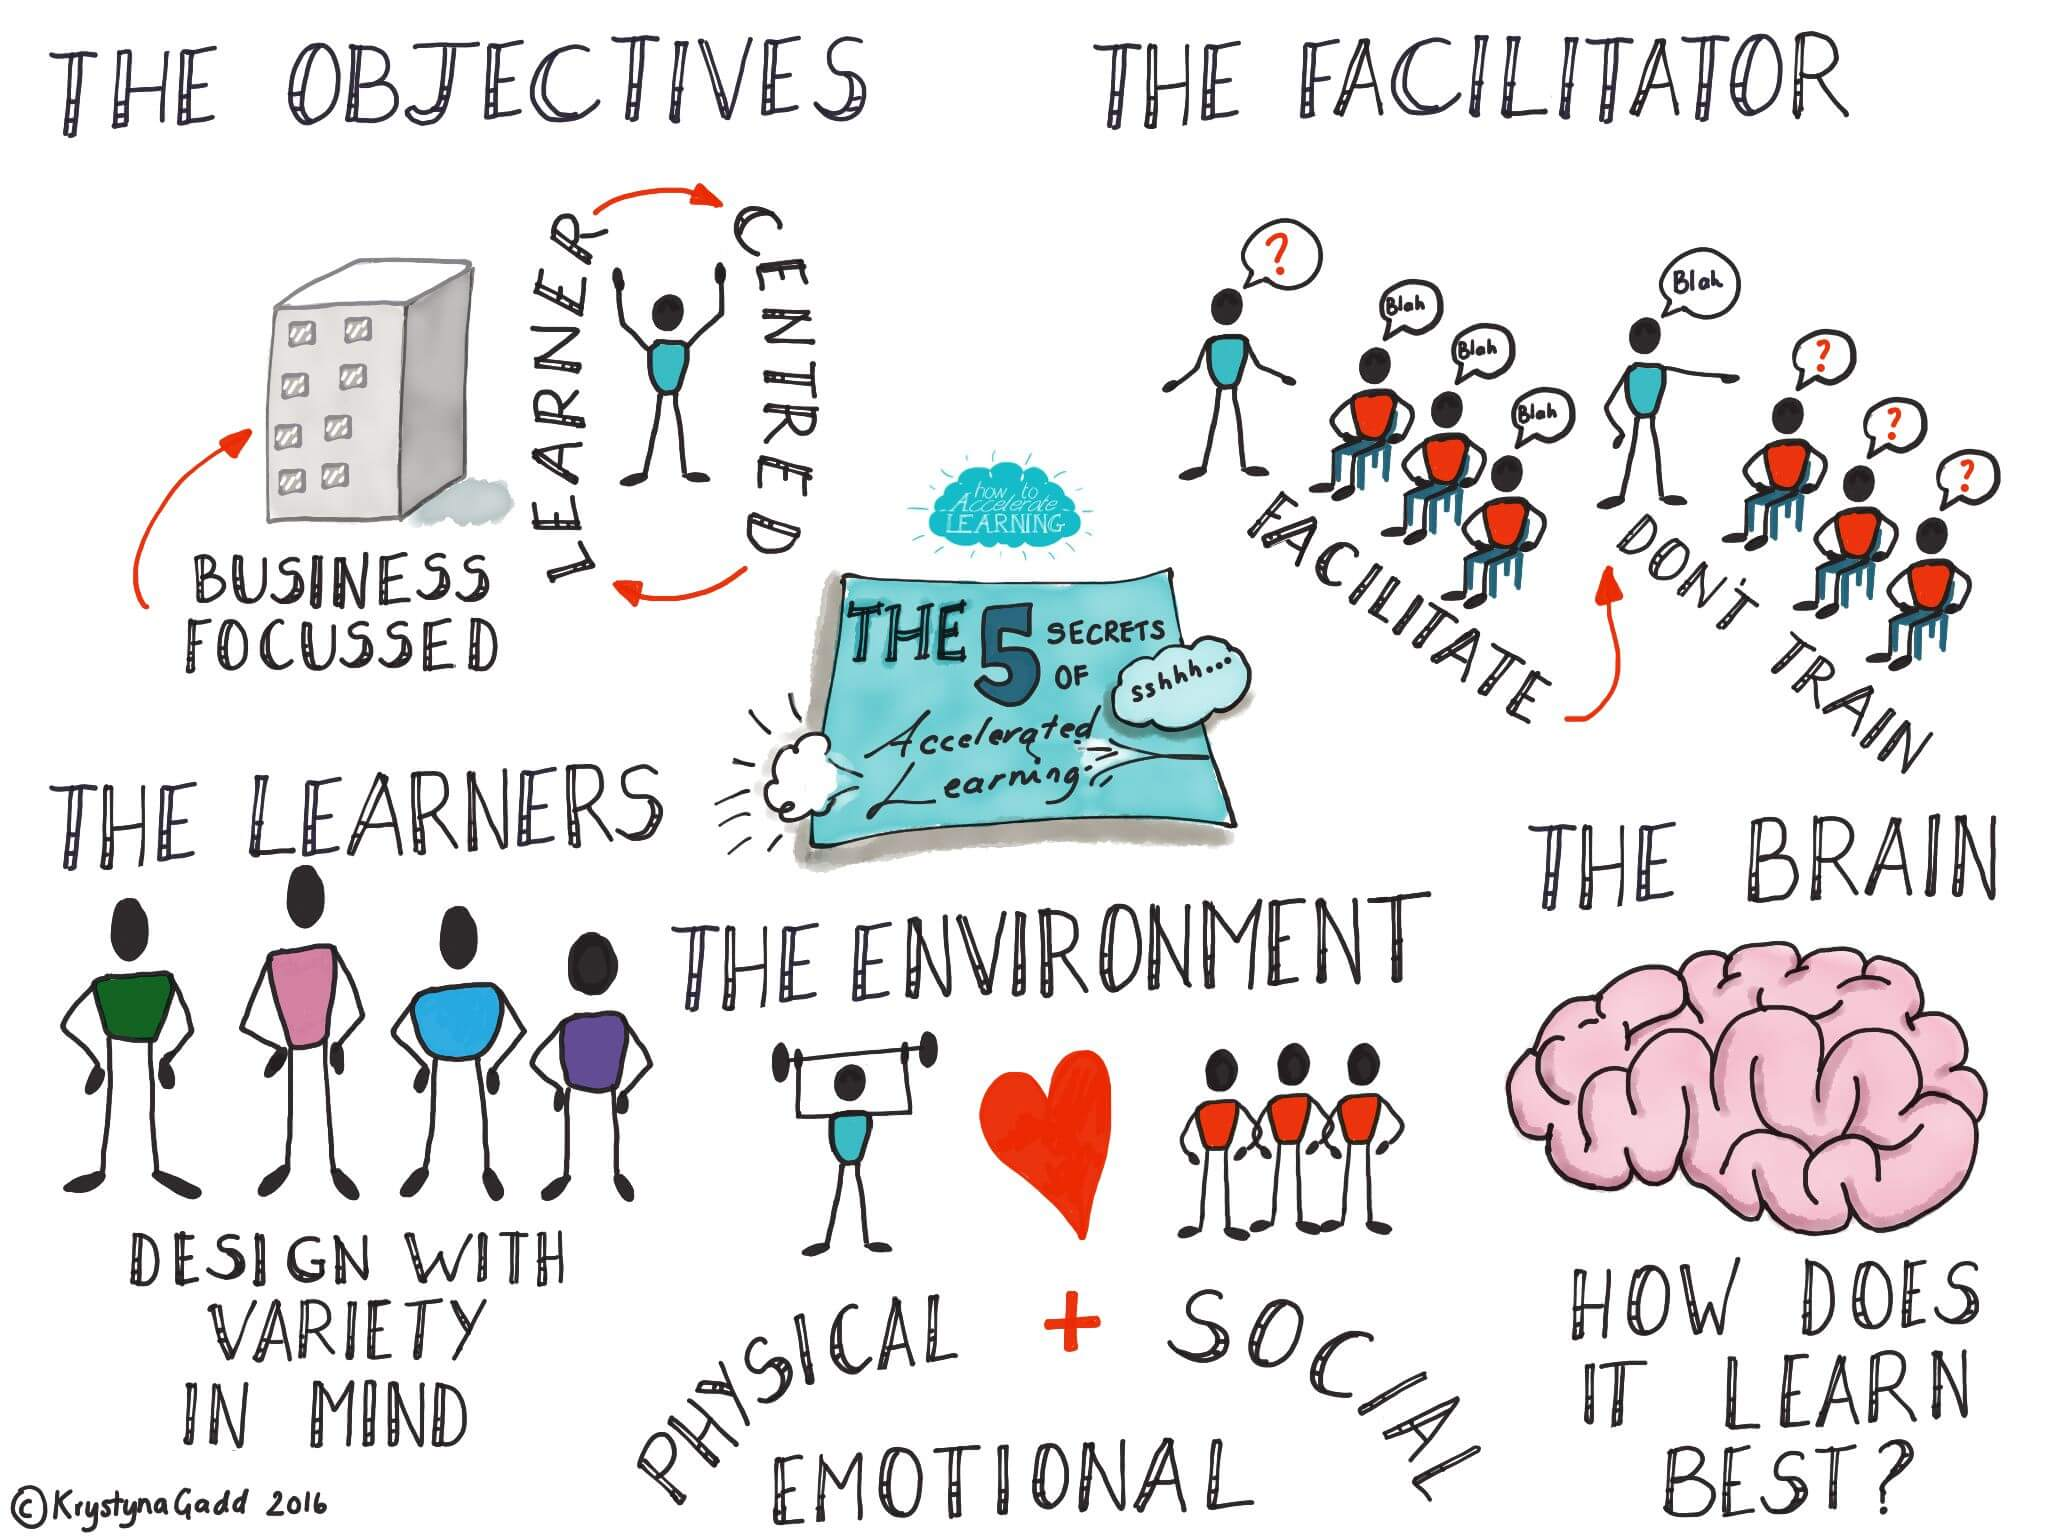 The 5 Not So Secret Secrets Of Accelerated Learning